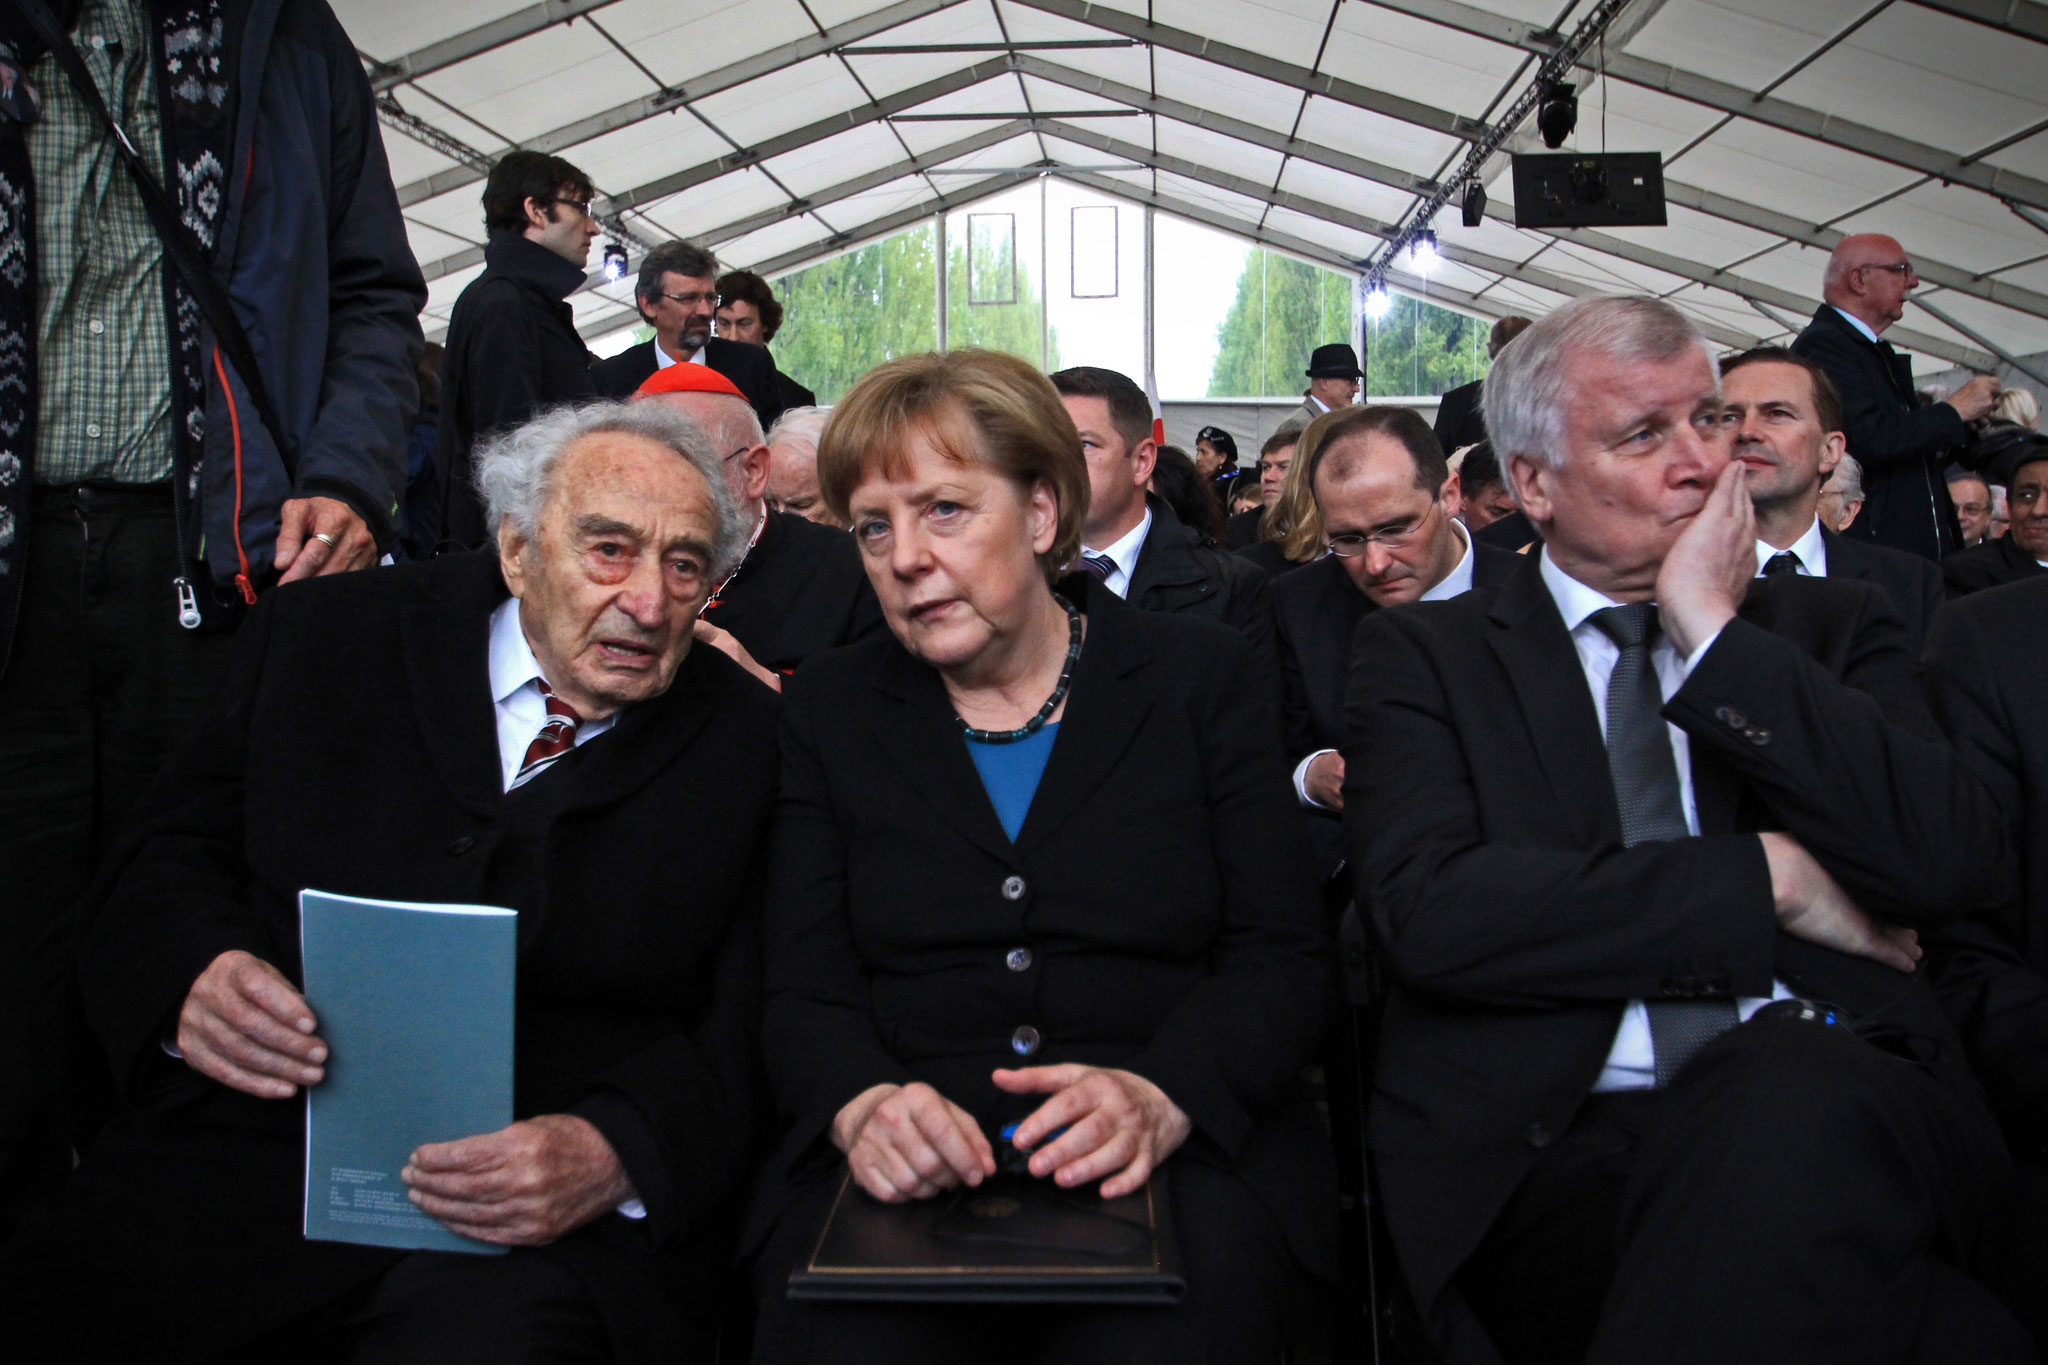 German Chancellor Angela Merkel with concentration camp survivor Max Mannheimer (left) and Bavarian Minister President Horst Seehofer in Dachau, May 2015.